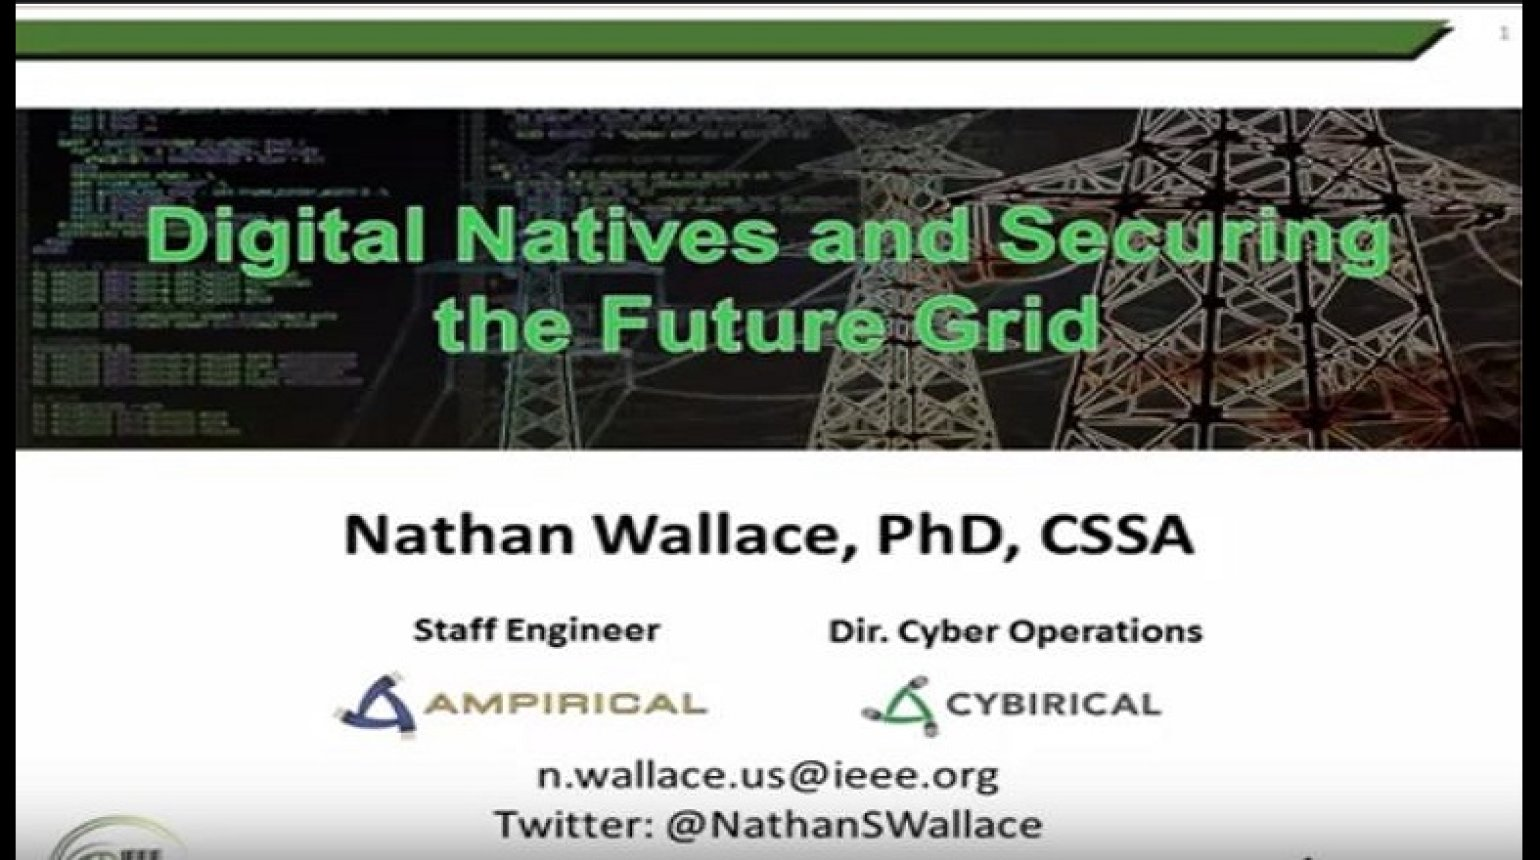 Digital Natives and Securing the Future Grid